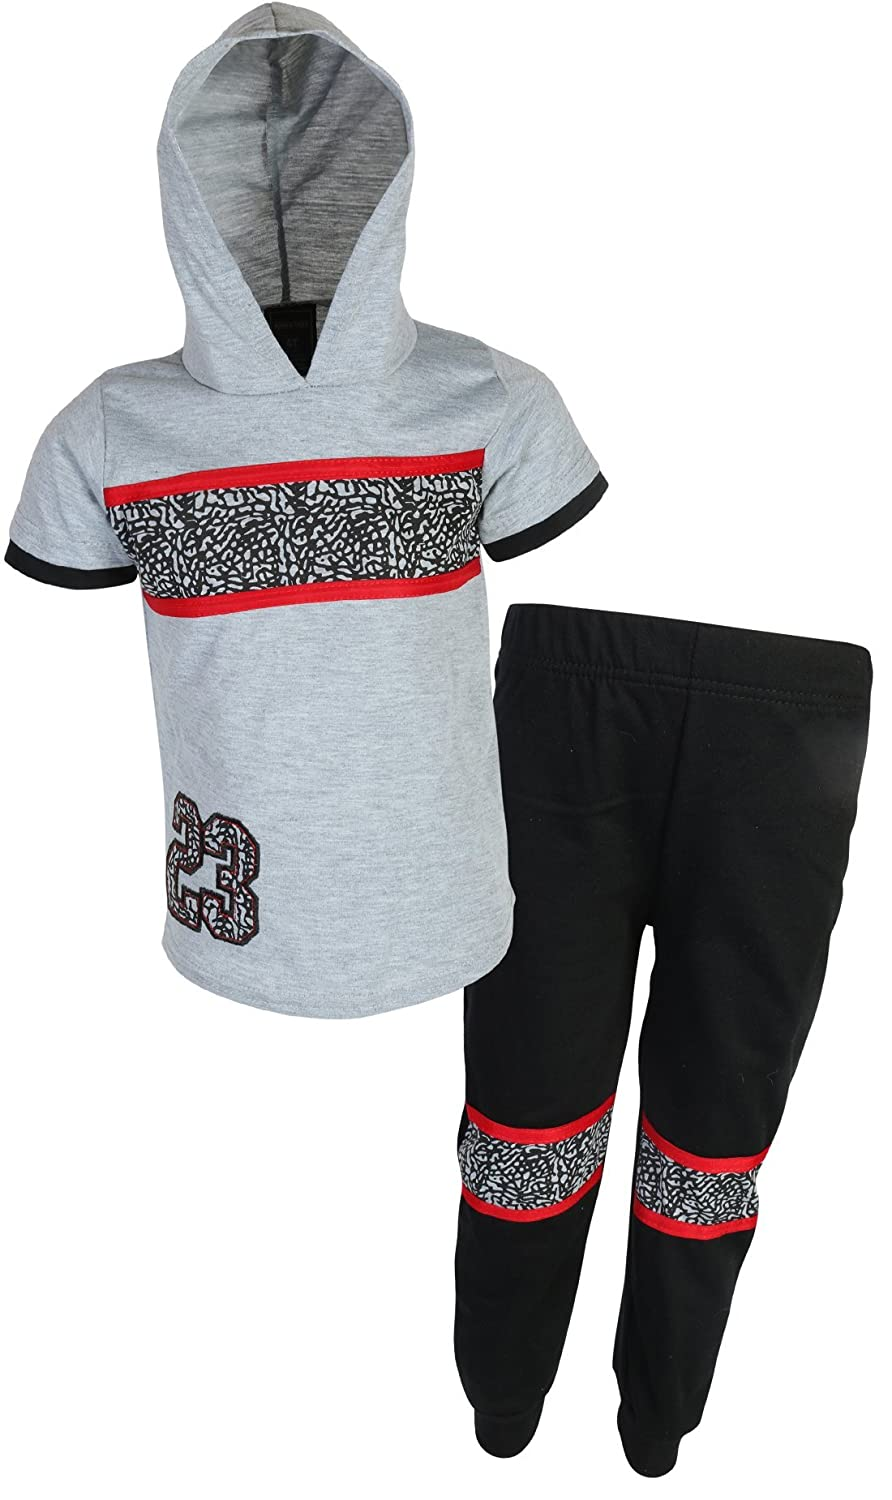 888860d99fb0f8 Short Sleeve Top with Hood for Added Warmth Cuffed Pants for an Extra  Secure Fit Two Piece Track Set with Hoodie and Matching Bottoms